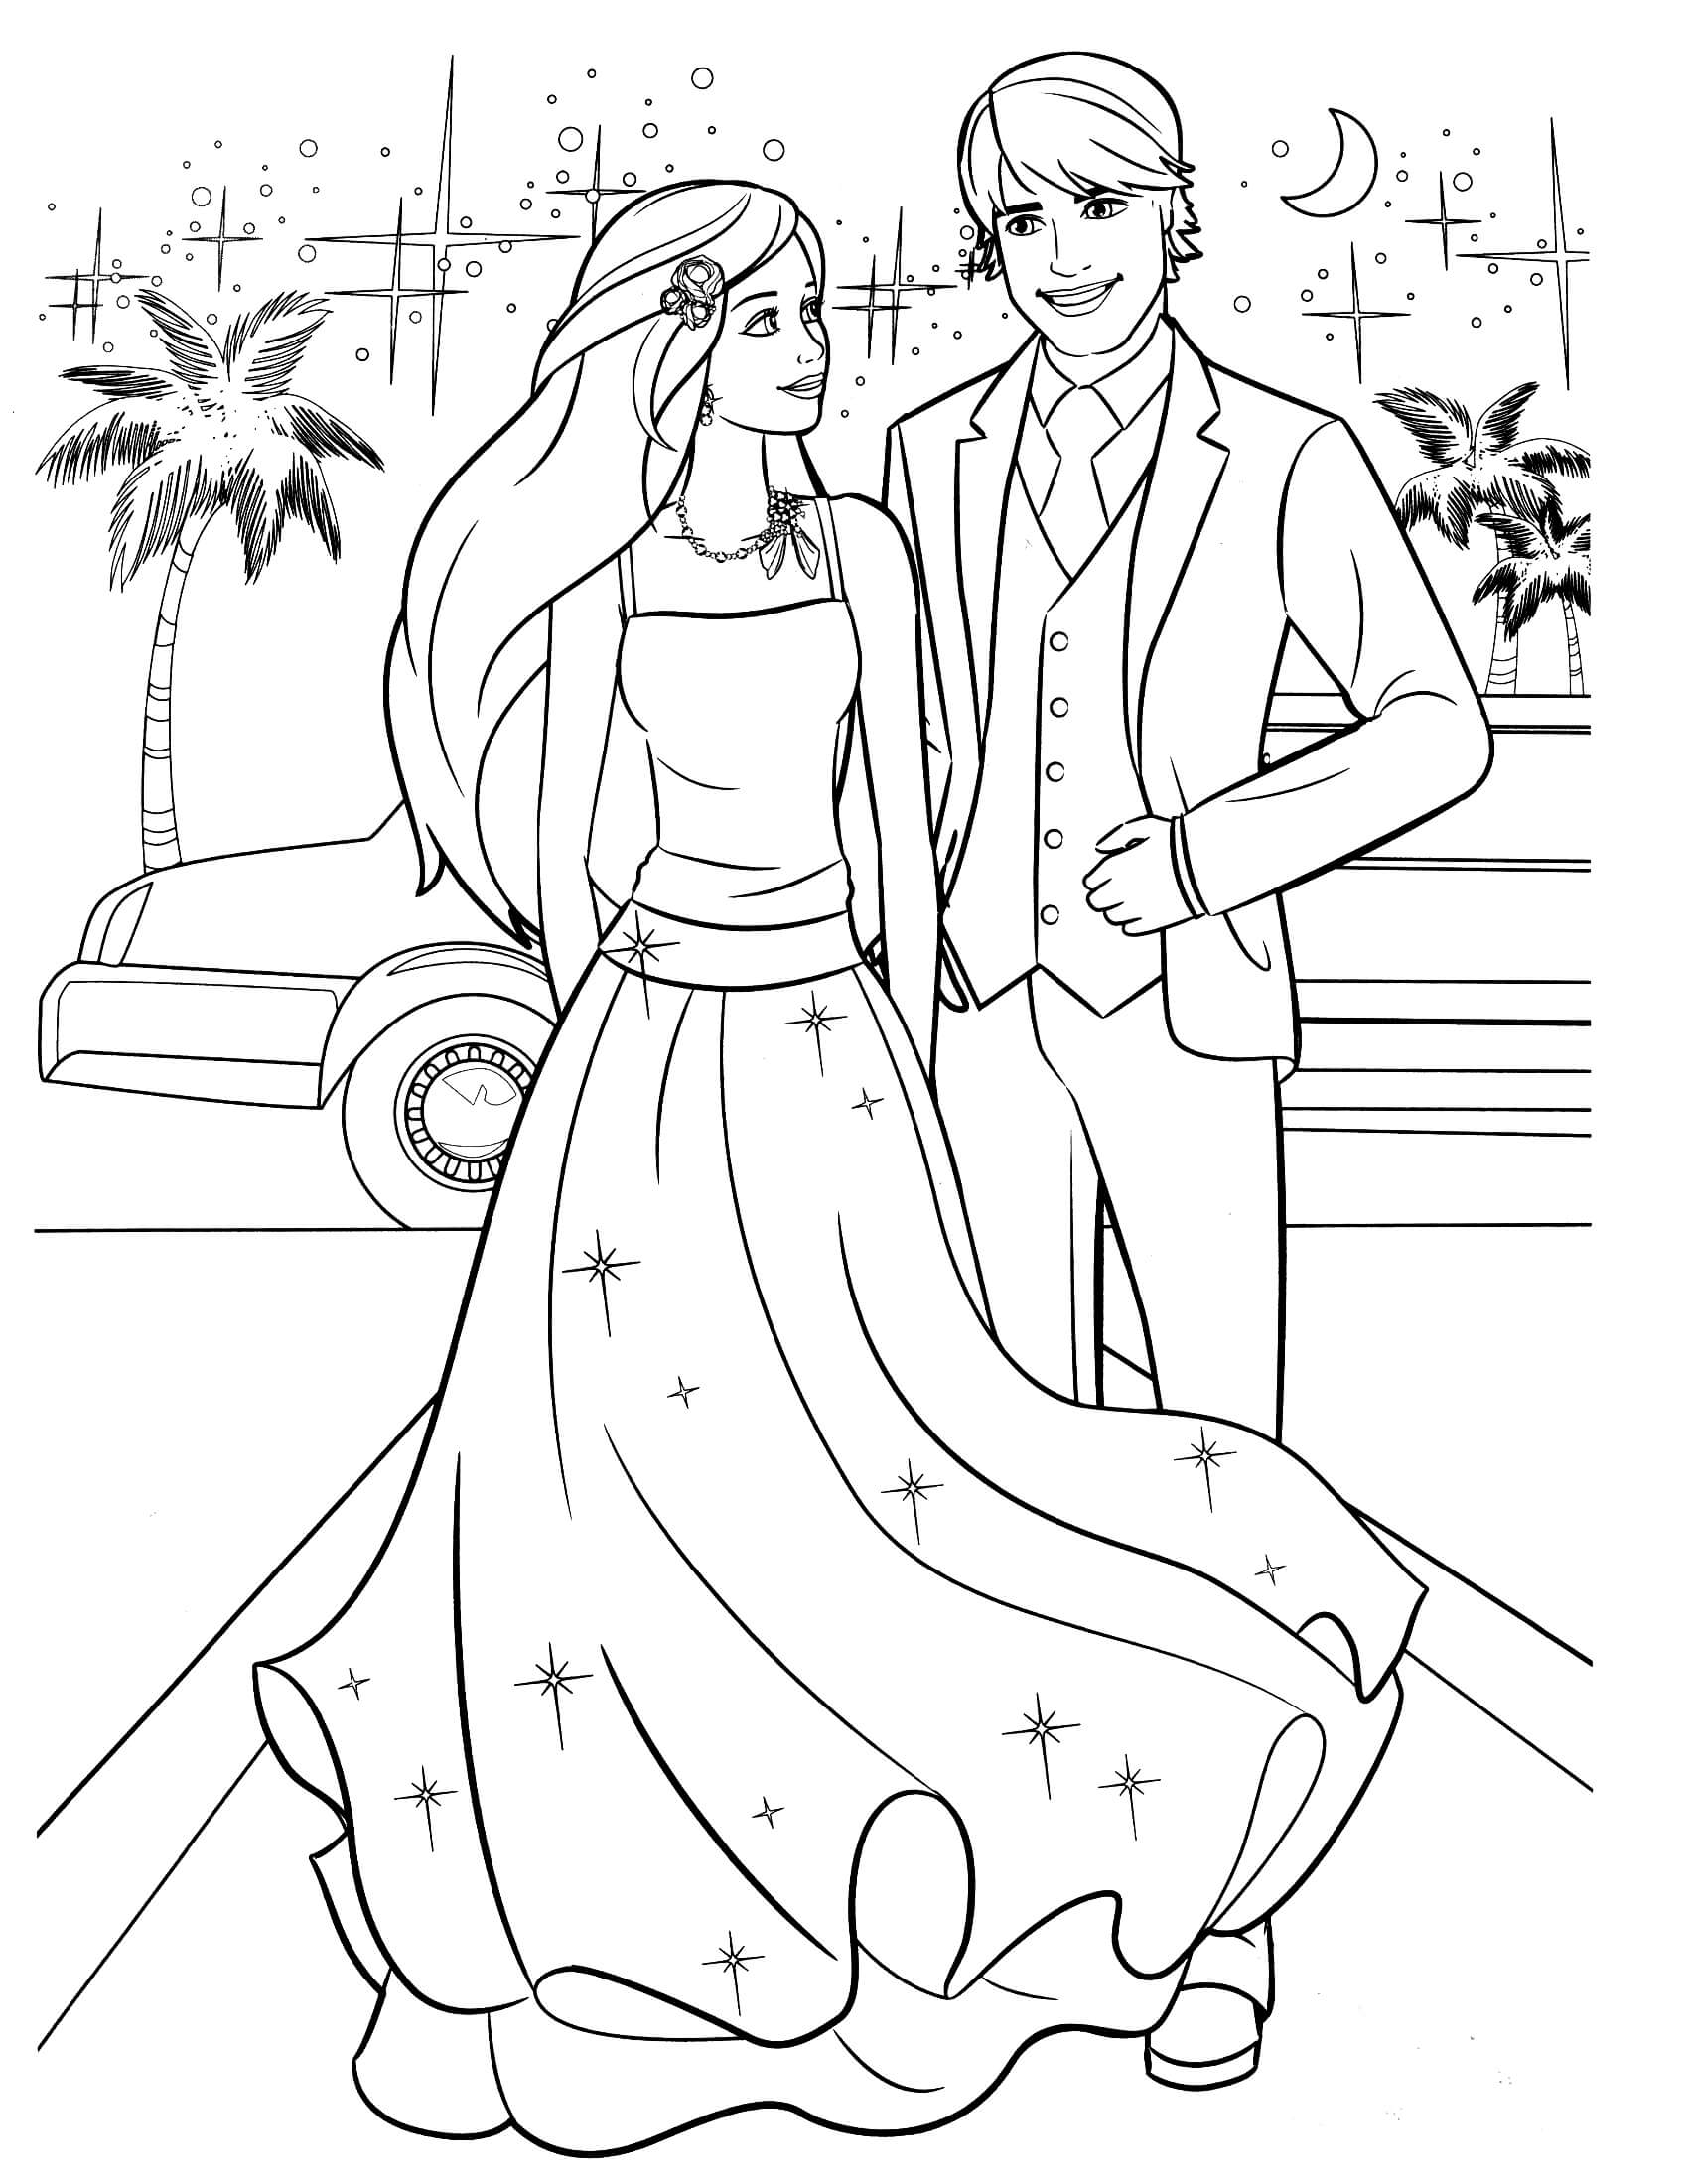 barbie printables coloring sheets for girls barbie and doll 101 coloring barbie printables